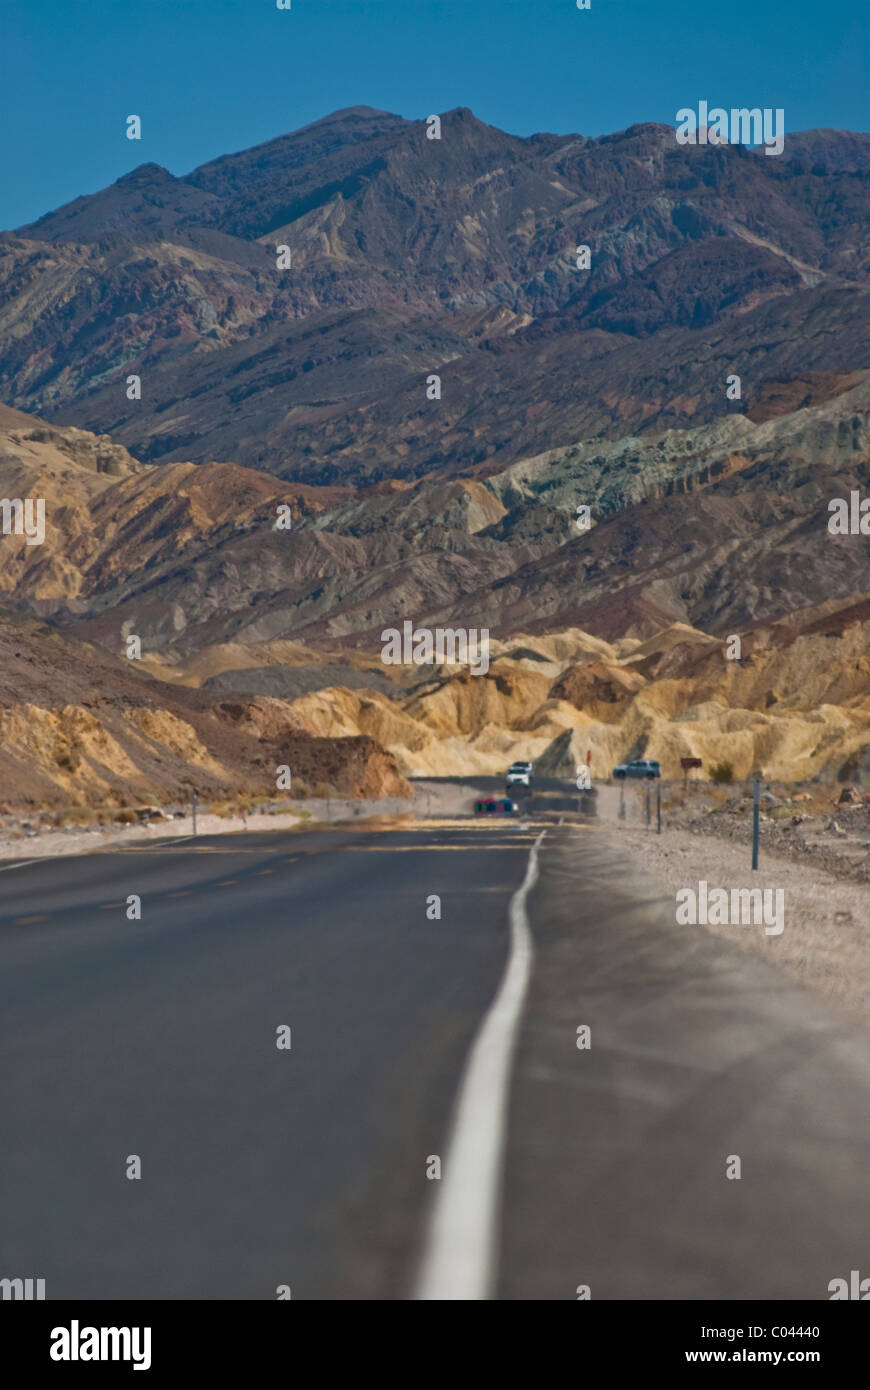 Colorful mountains at Death Valley National Park - Stock Image